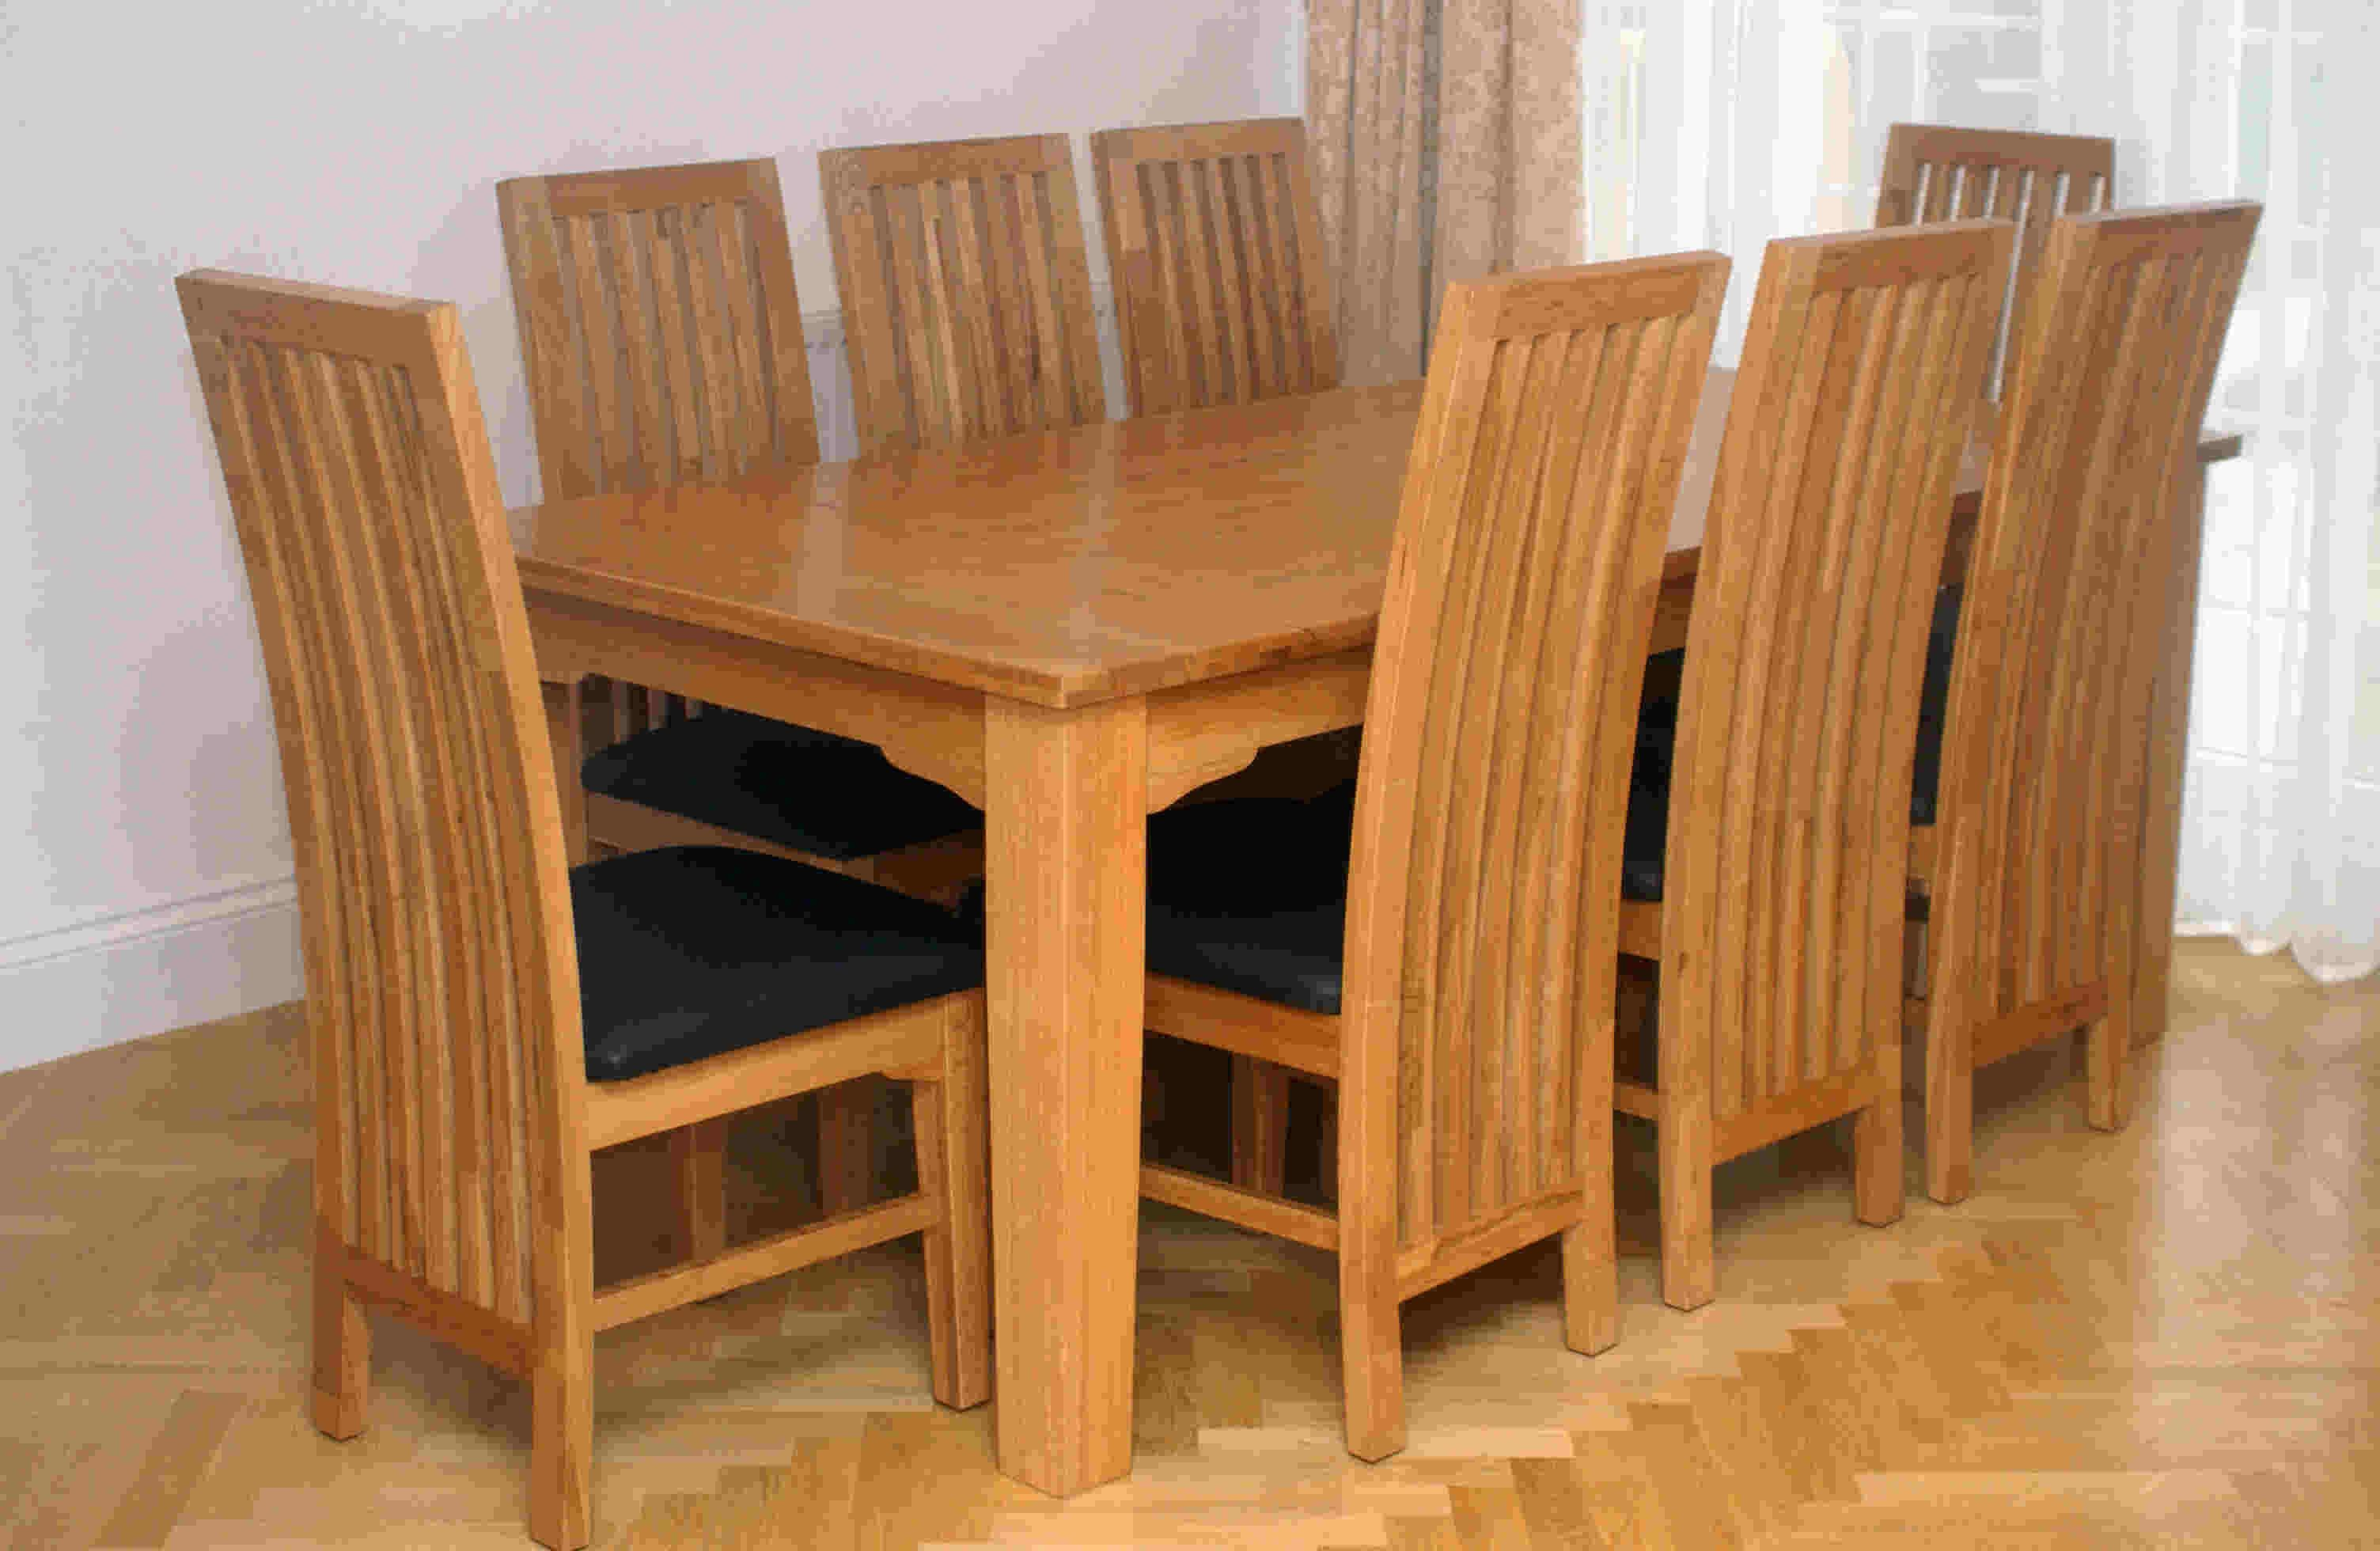 Wood Furniture plans for high quality wood furniture ..visit here.. http://dld.bz